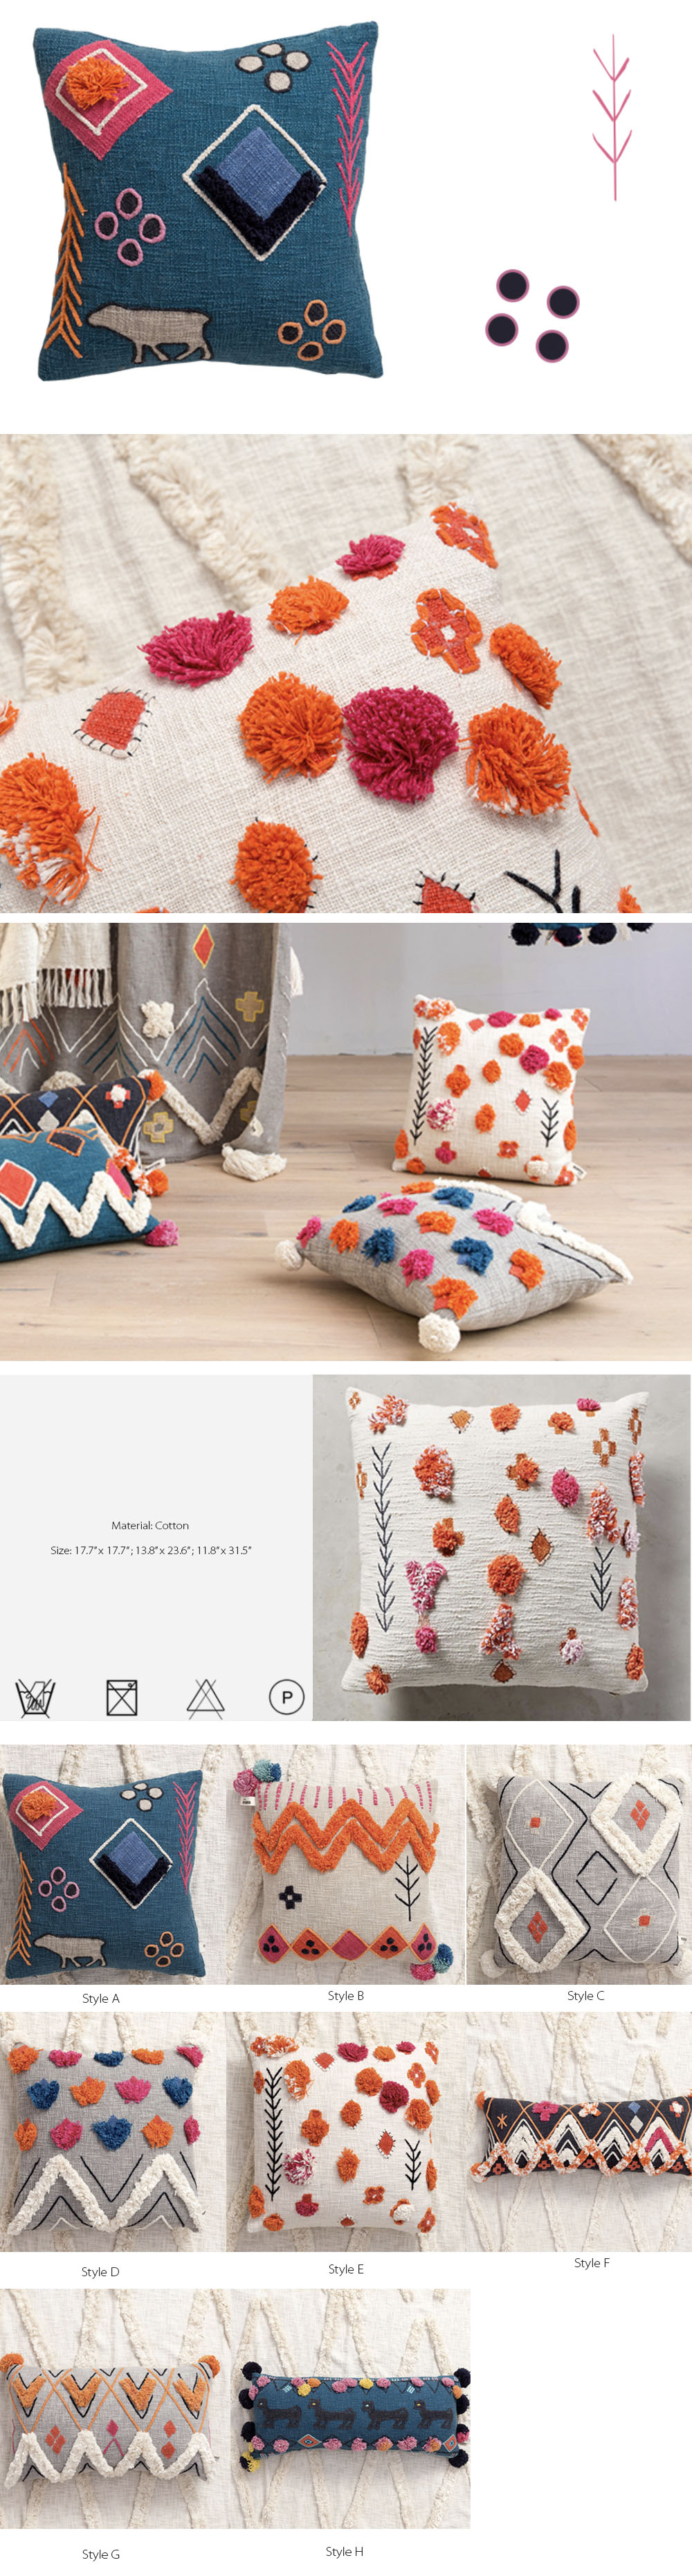 Colorful Cushion Moroccan Style